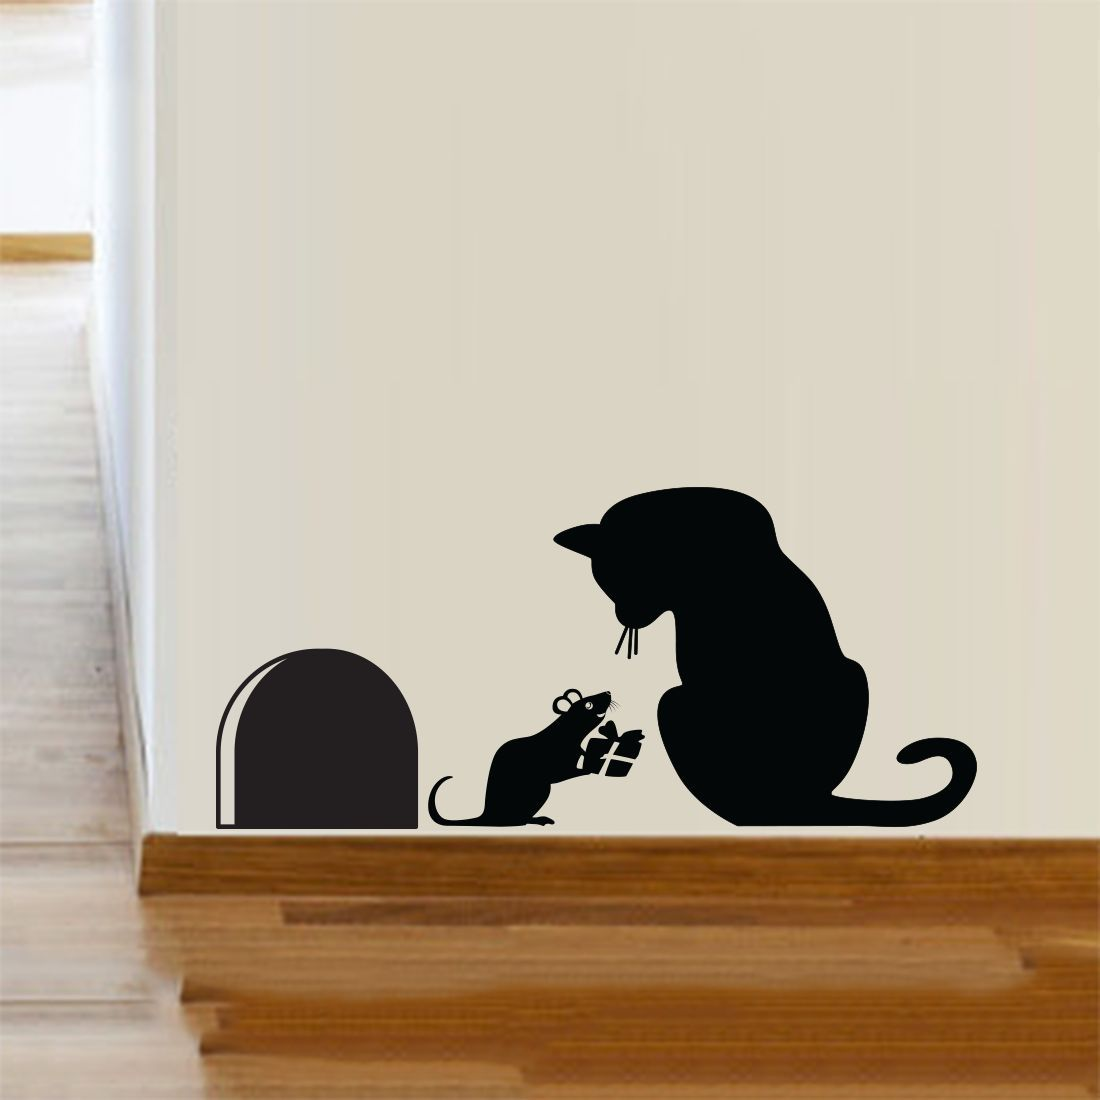 Sticker Decor Cat Mouse Hole Christmas Party Vinyl Wall Sticker Decor